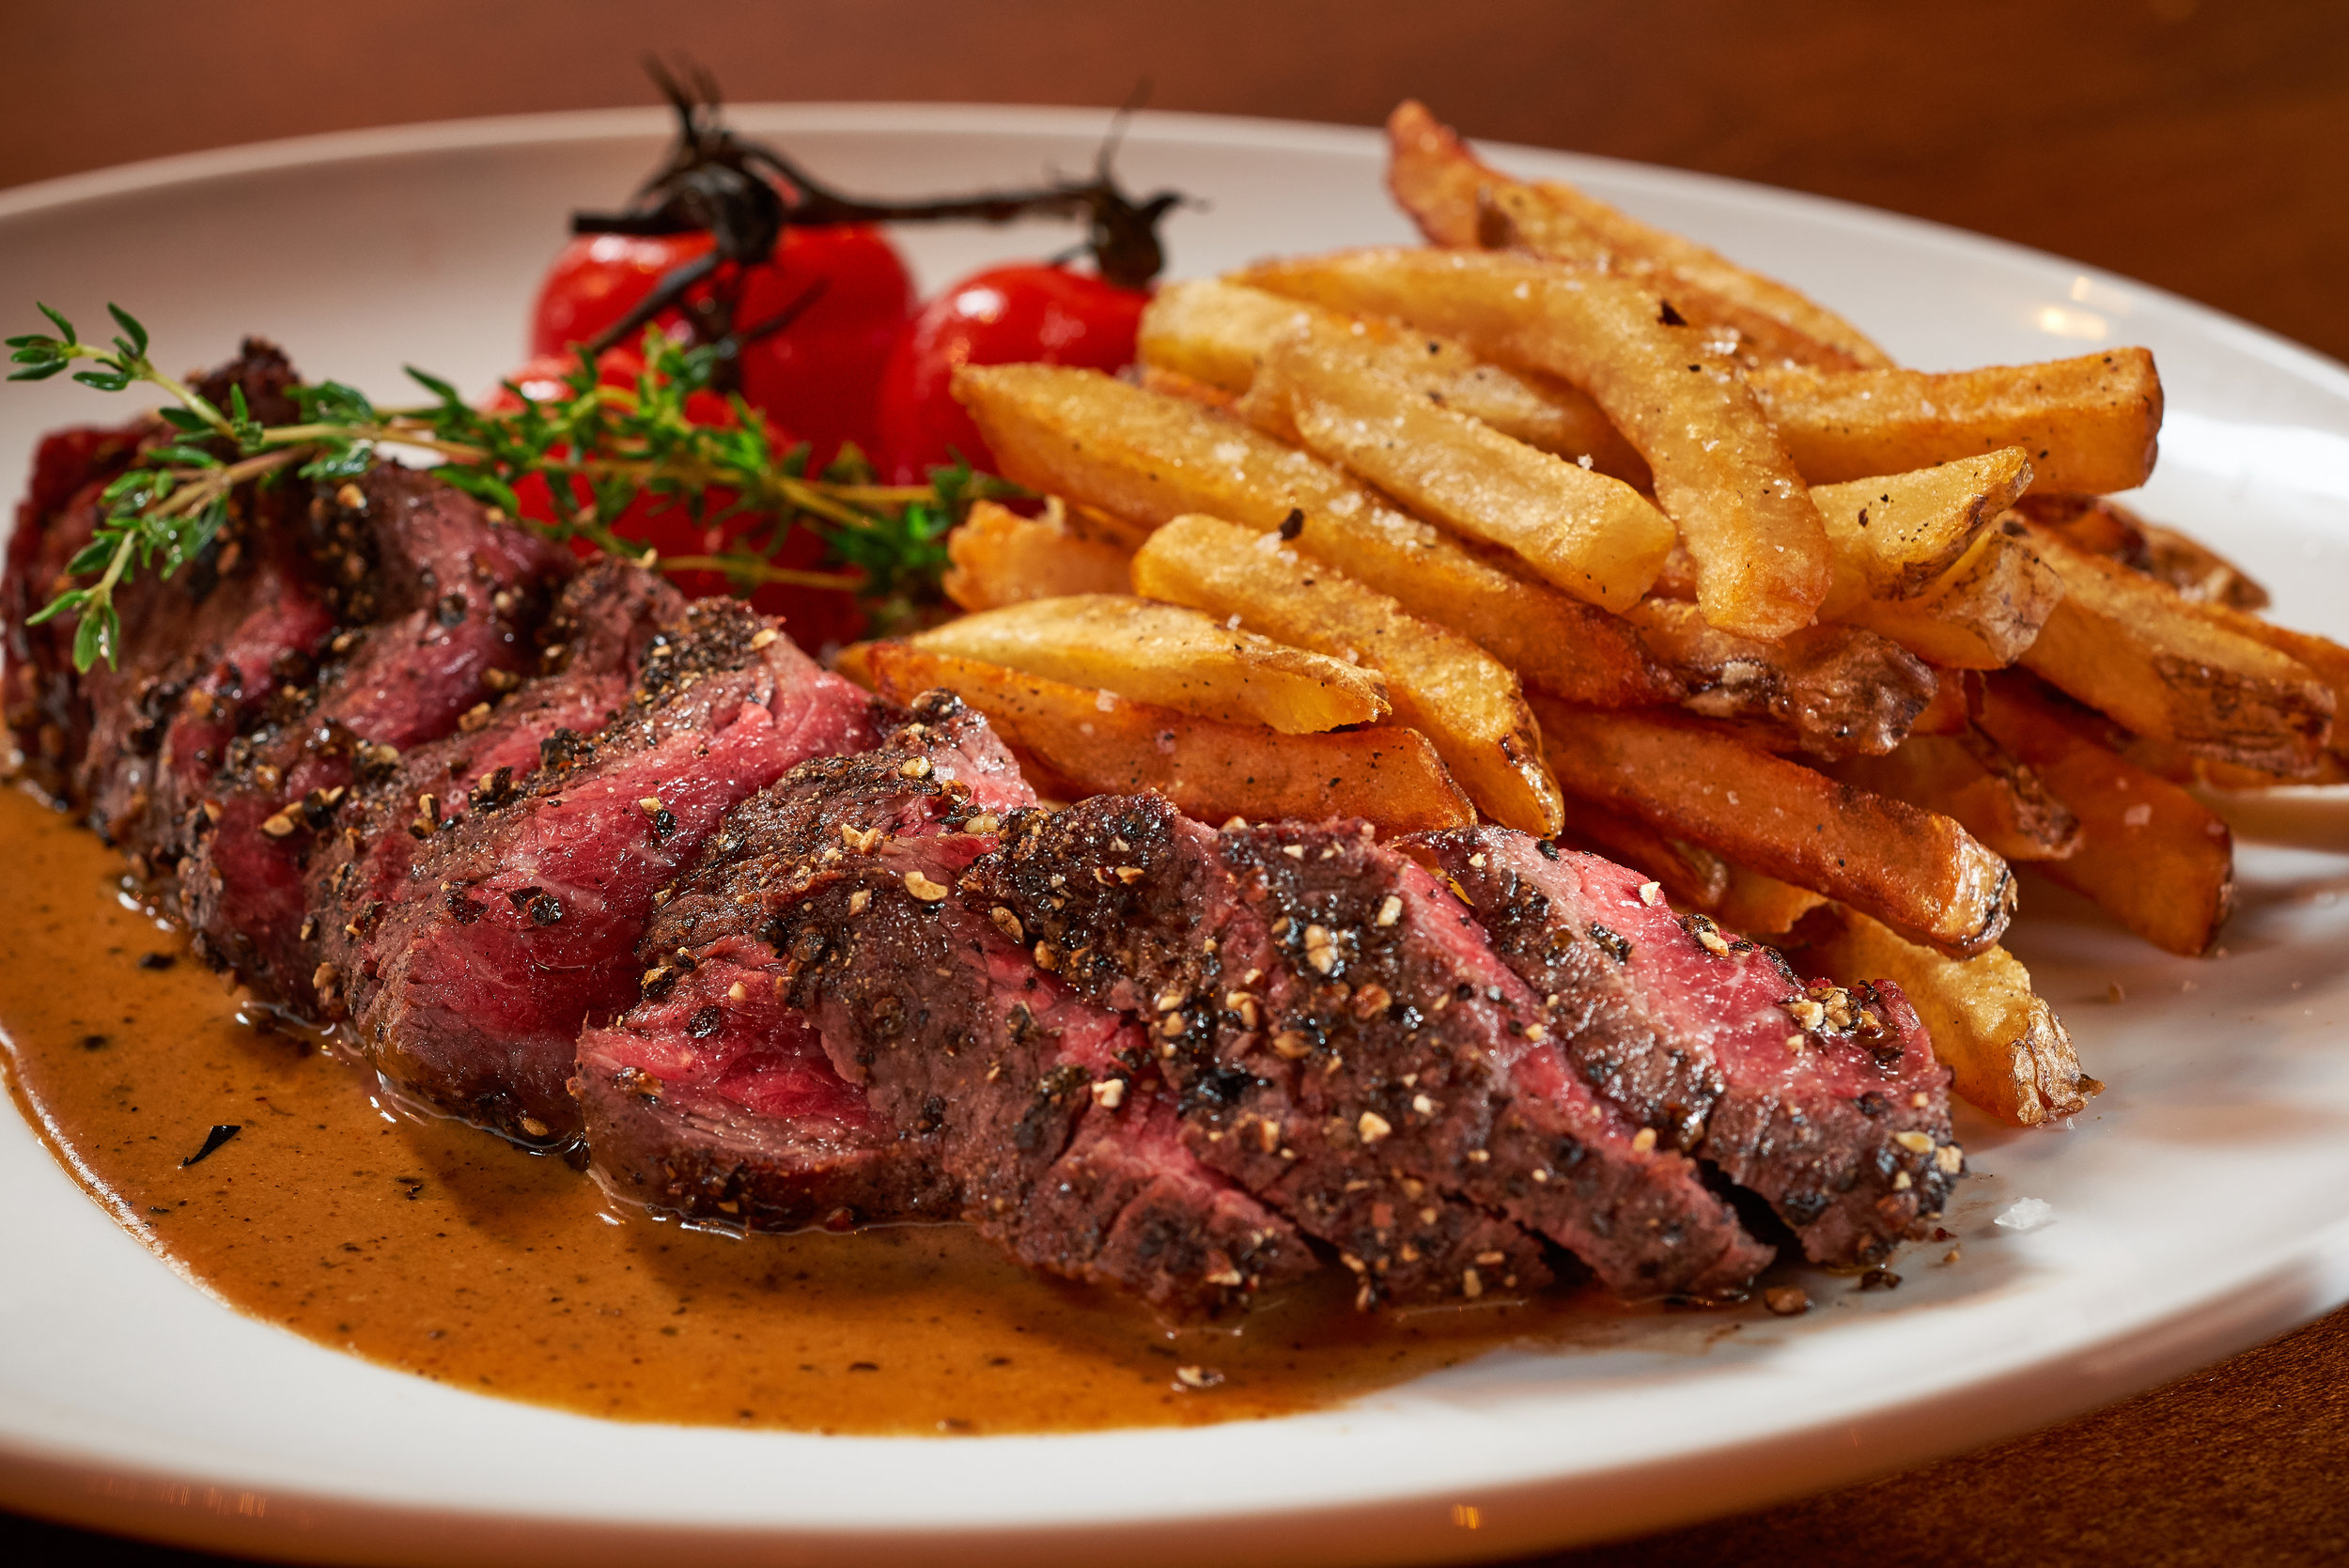 Professional food photo of juicy medium rare steak with french fries and grape tomatoes. Commercial photography